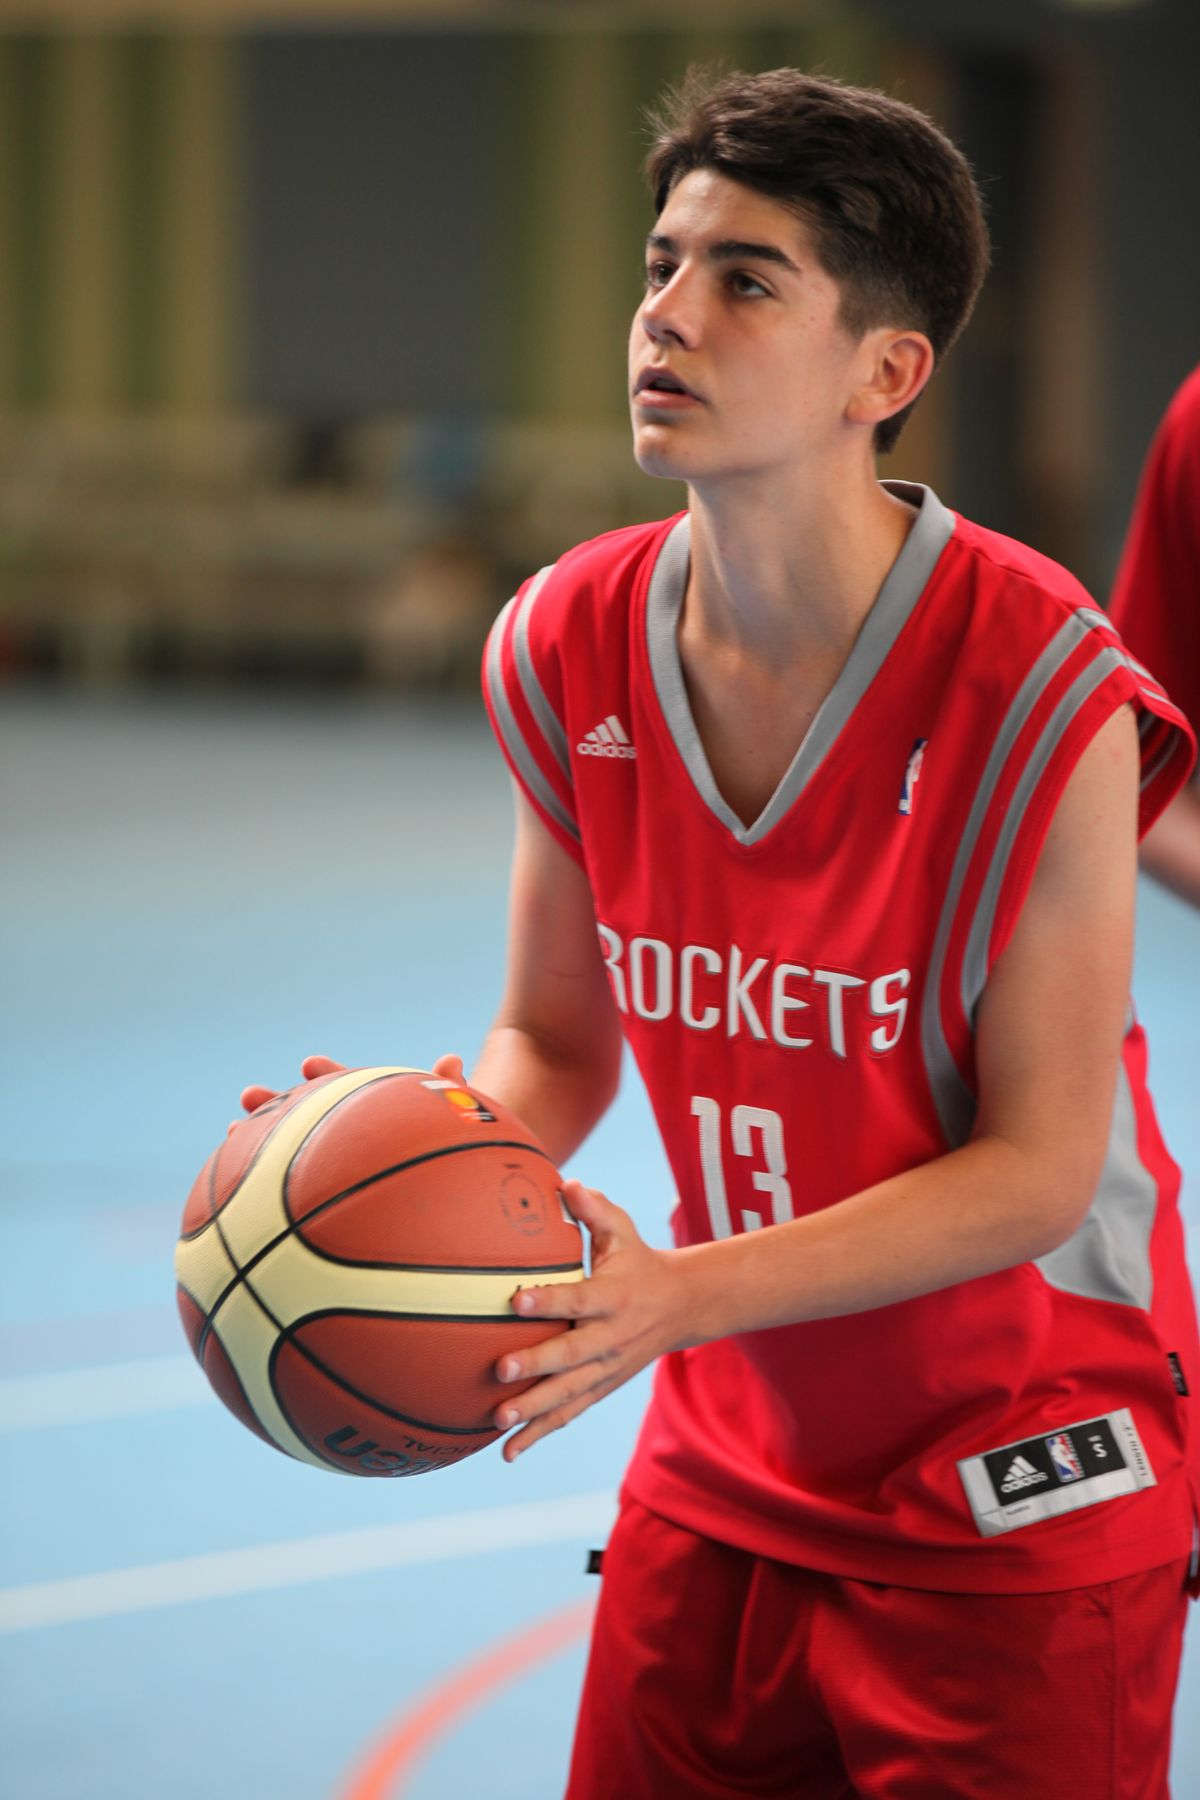 Sommer_BBall-Camp_2014_Tag 3 (8)